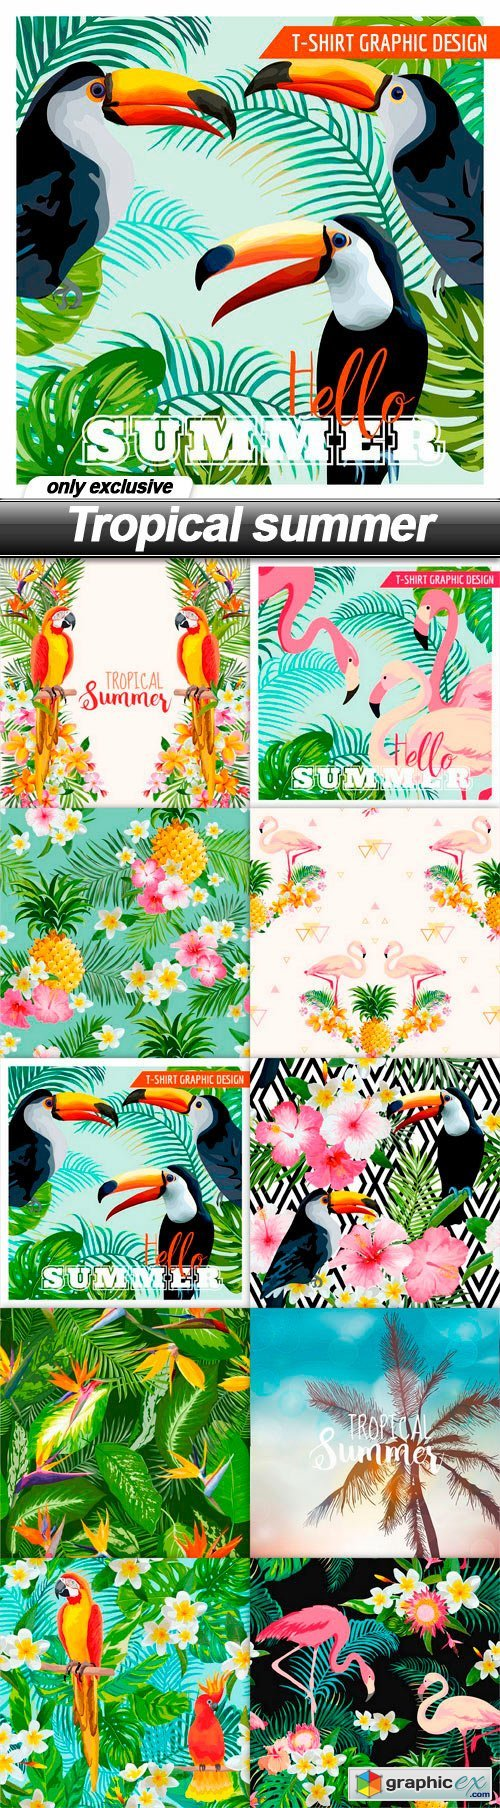 Tropical summer - 10 EPS